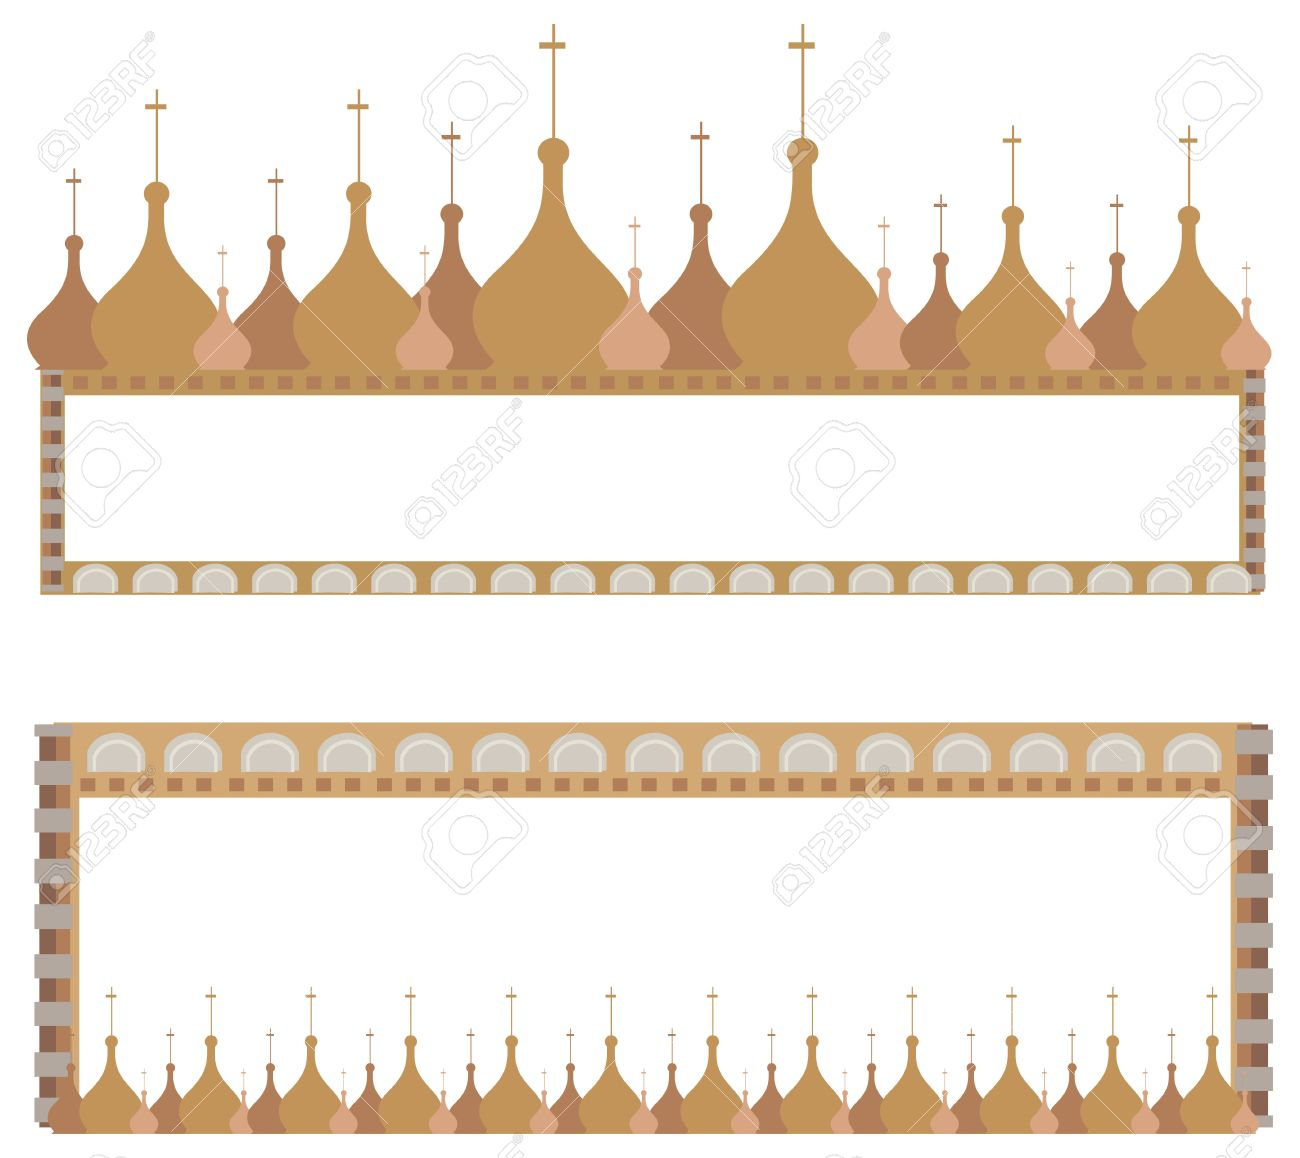 Frame Illustrations With Onion Domes Isolated On White Royalty.